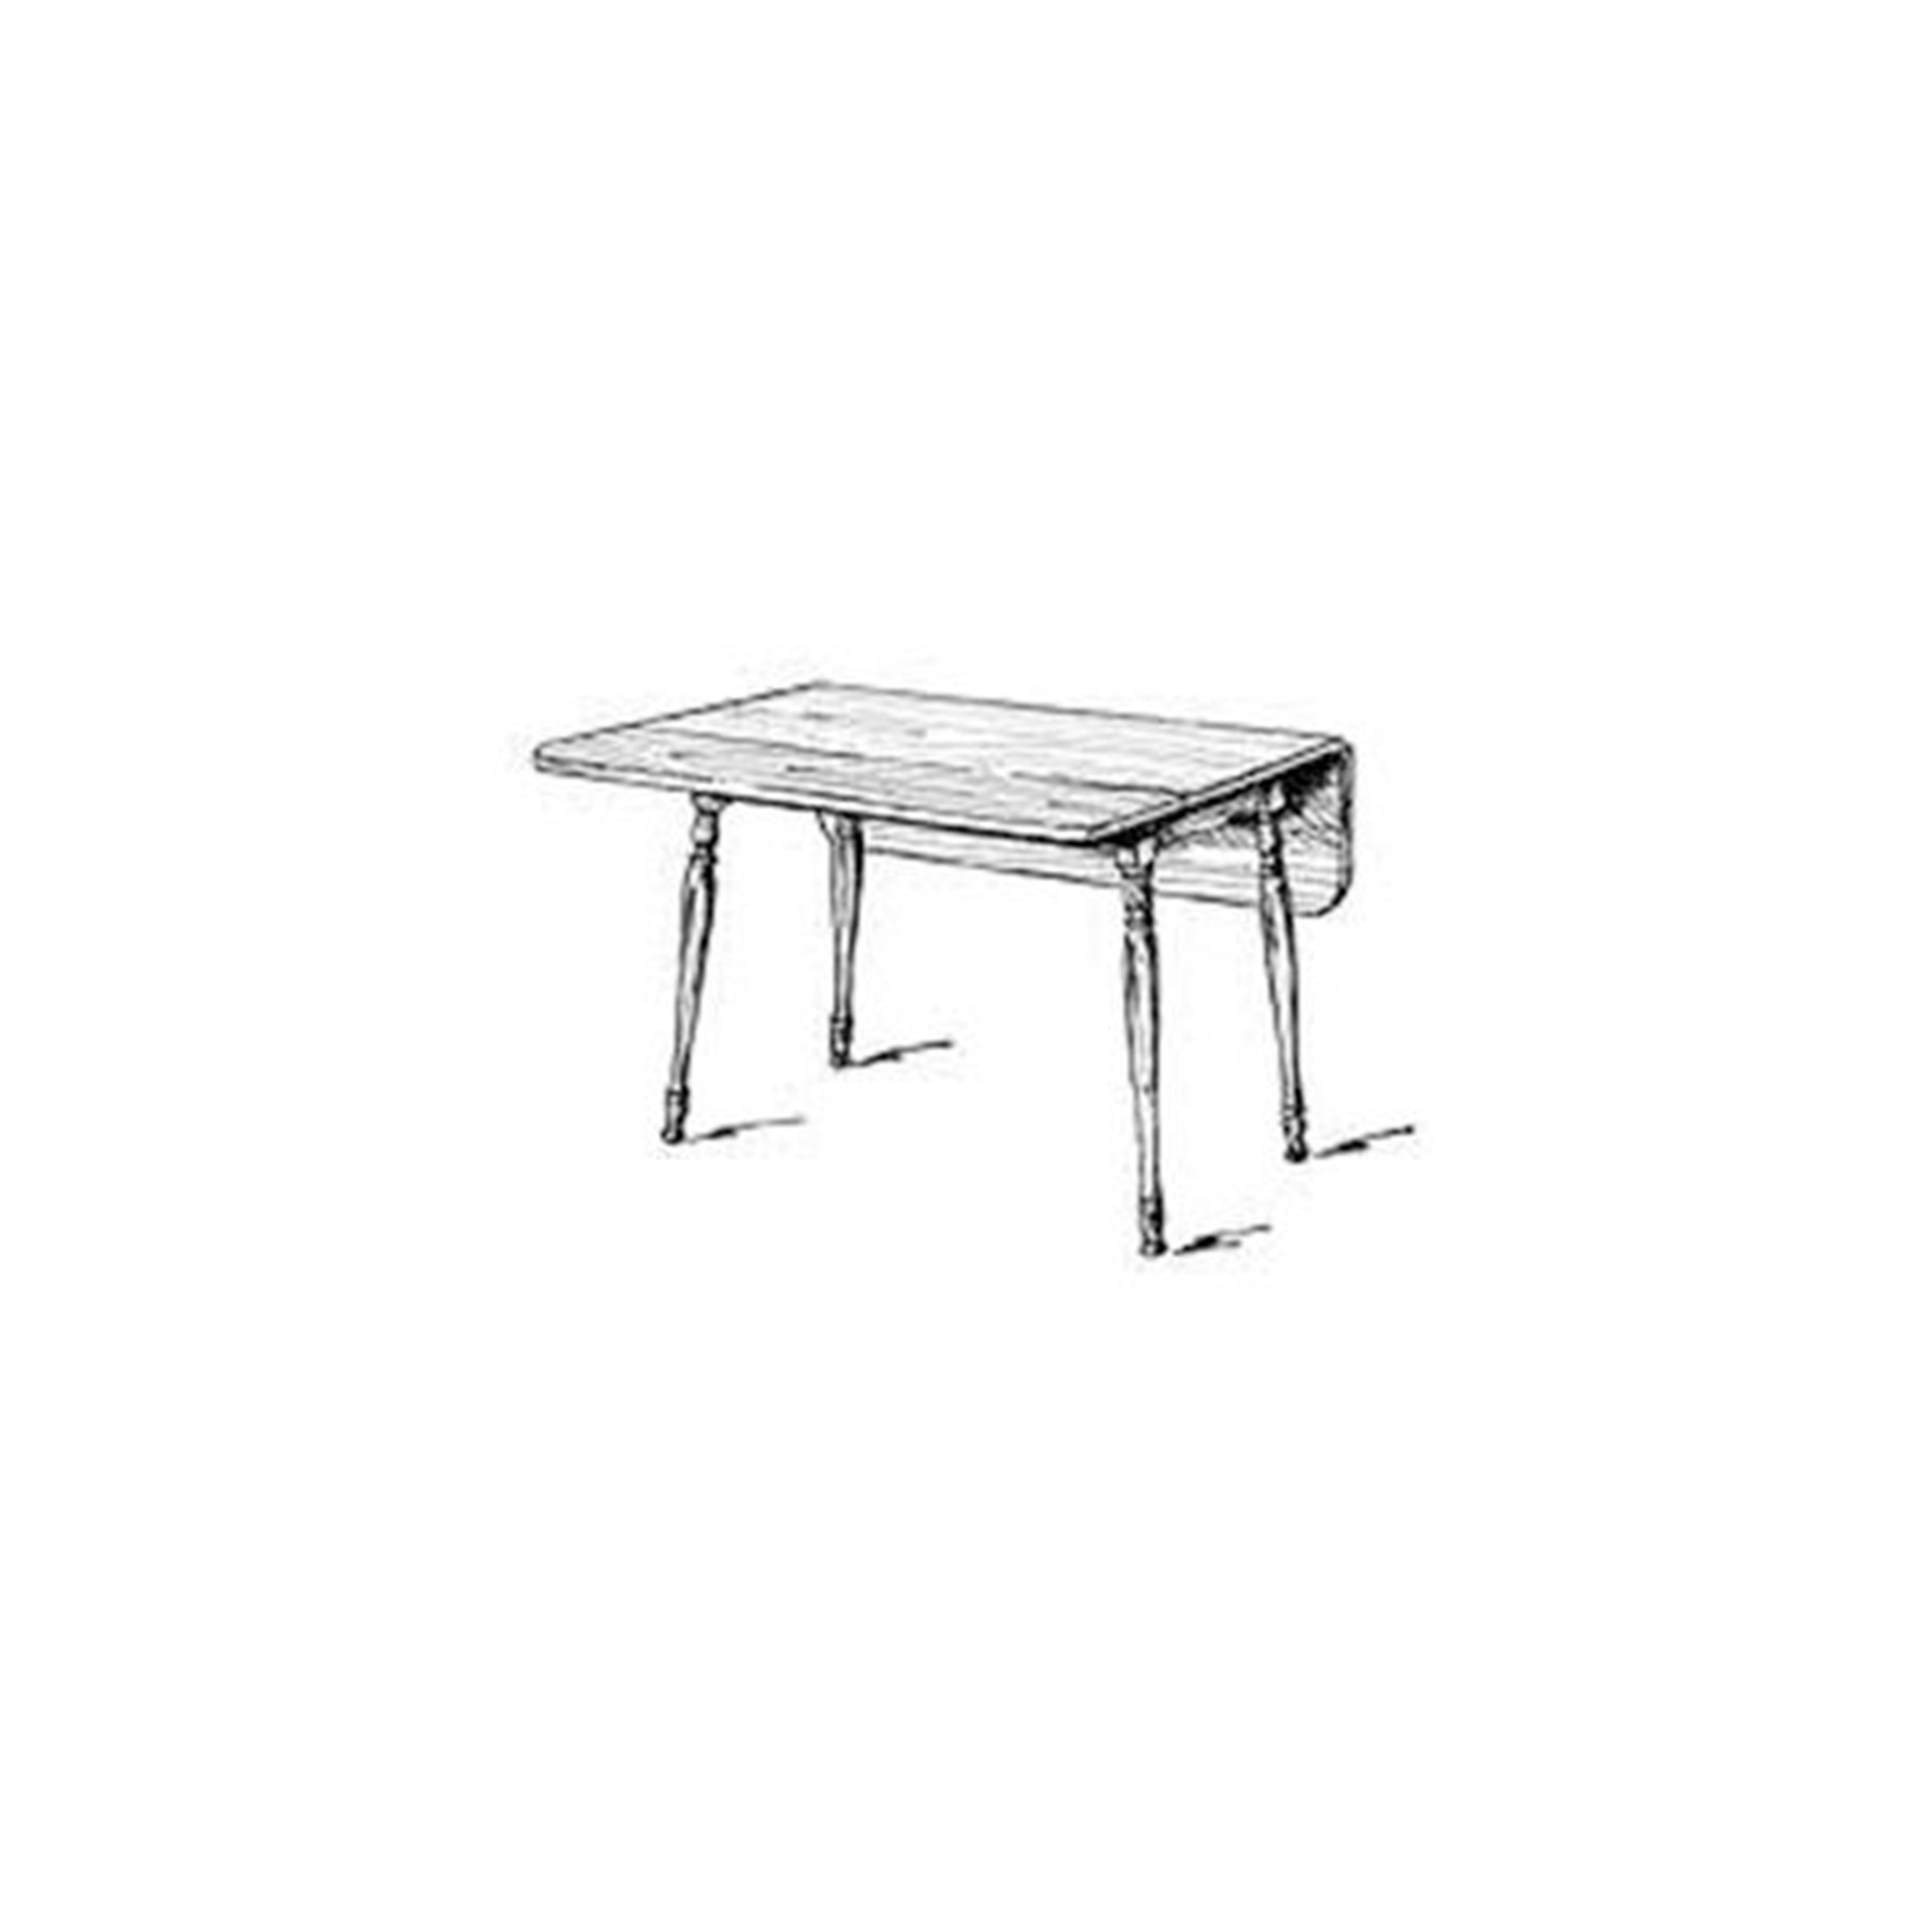 Woodworking Project Paper Plan to Build Harvest Table, 48